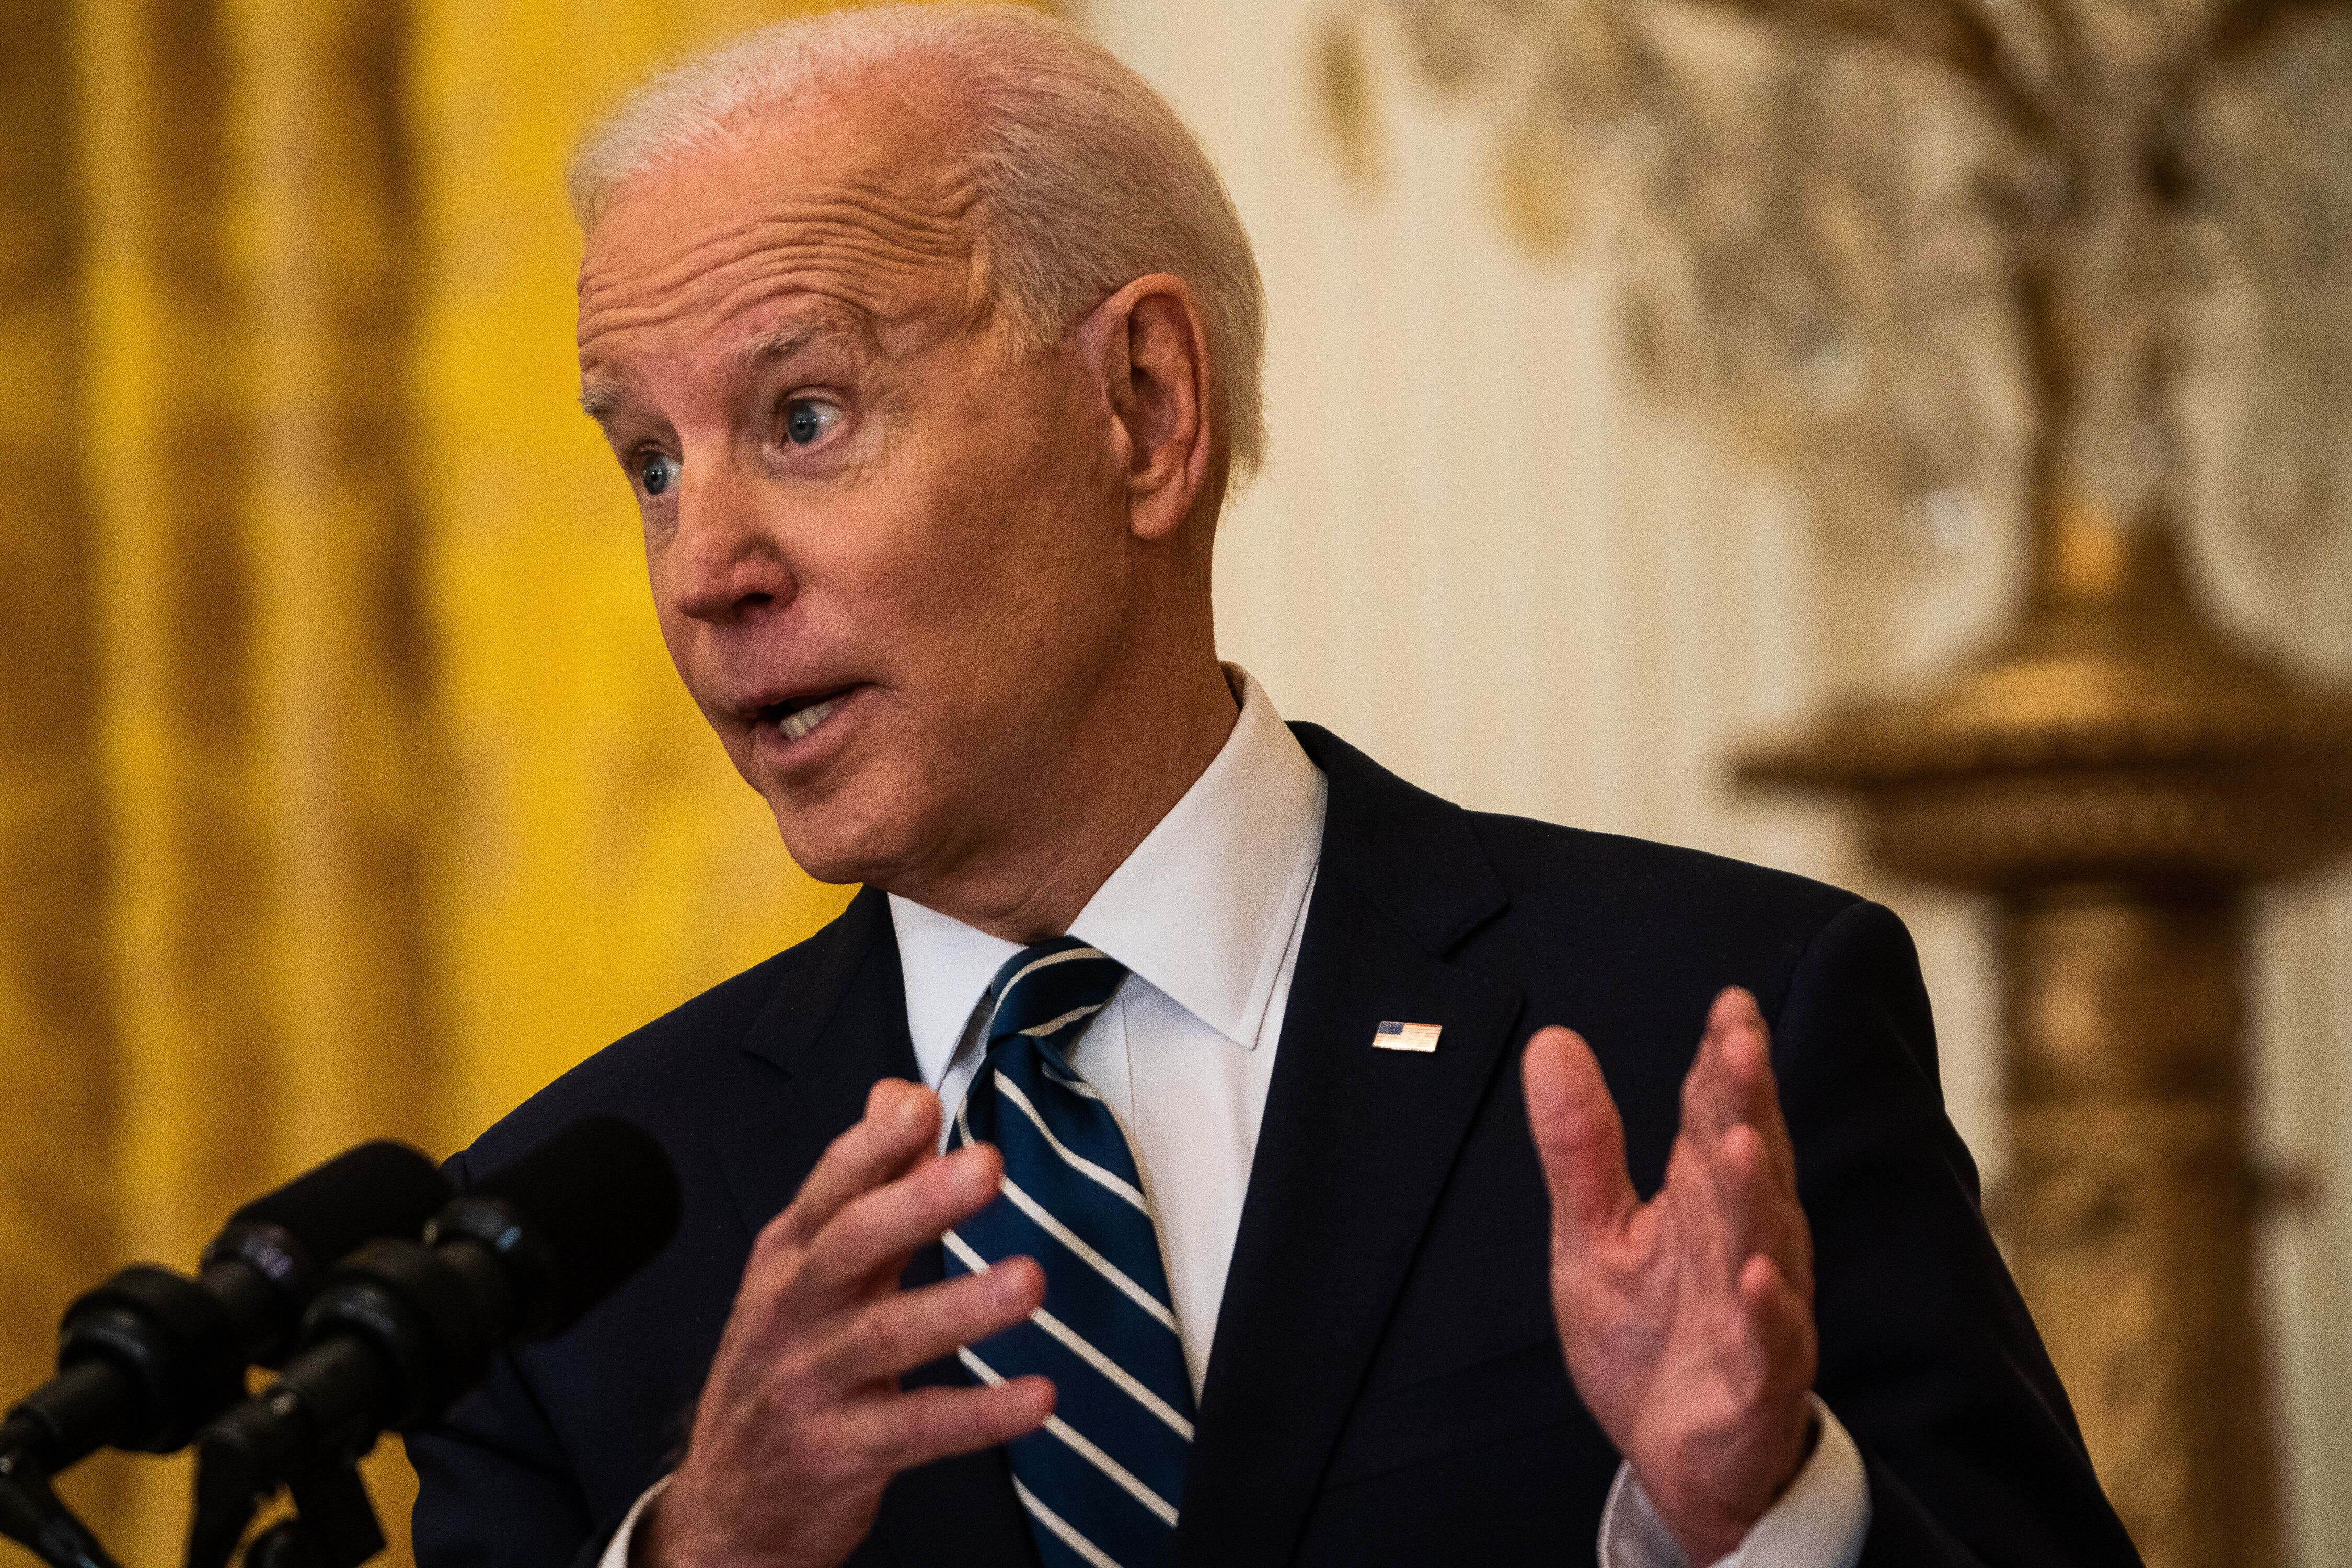 Democrats are uniformly lining up behind the most essential parts of President Joe Biden's policy program.